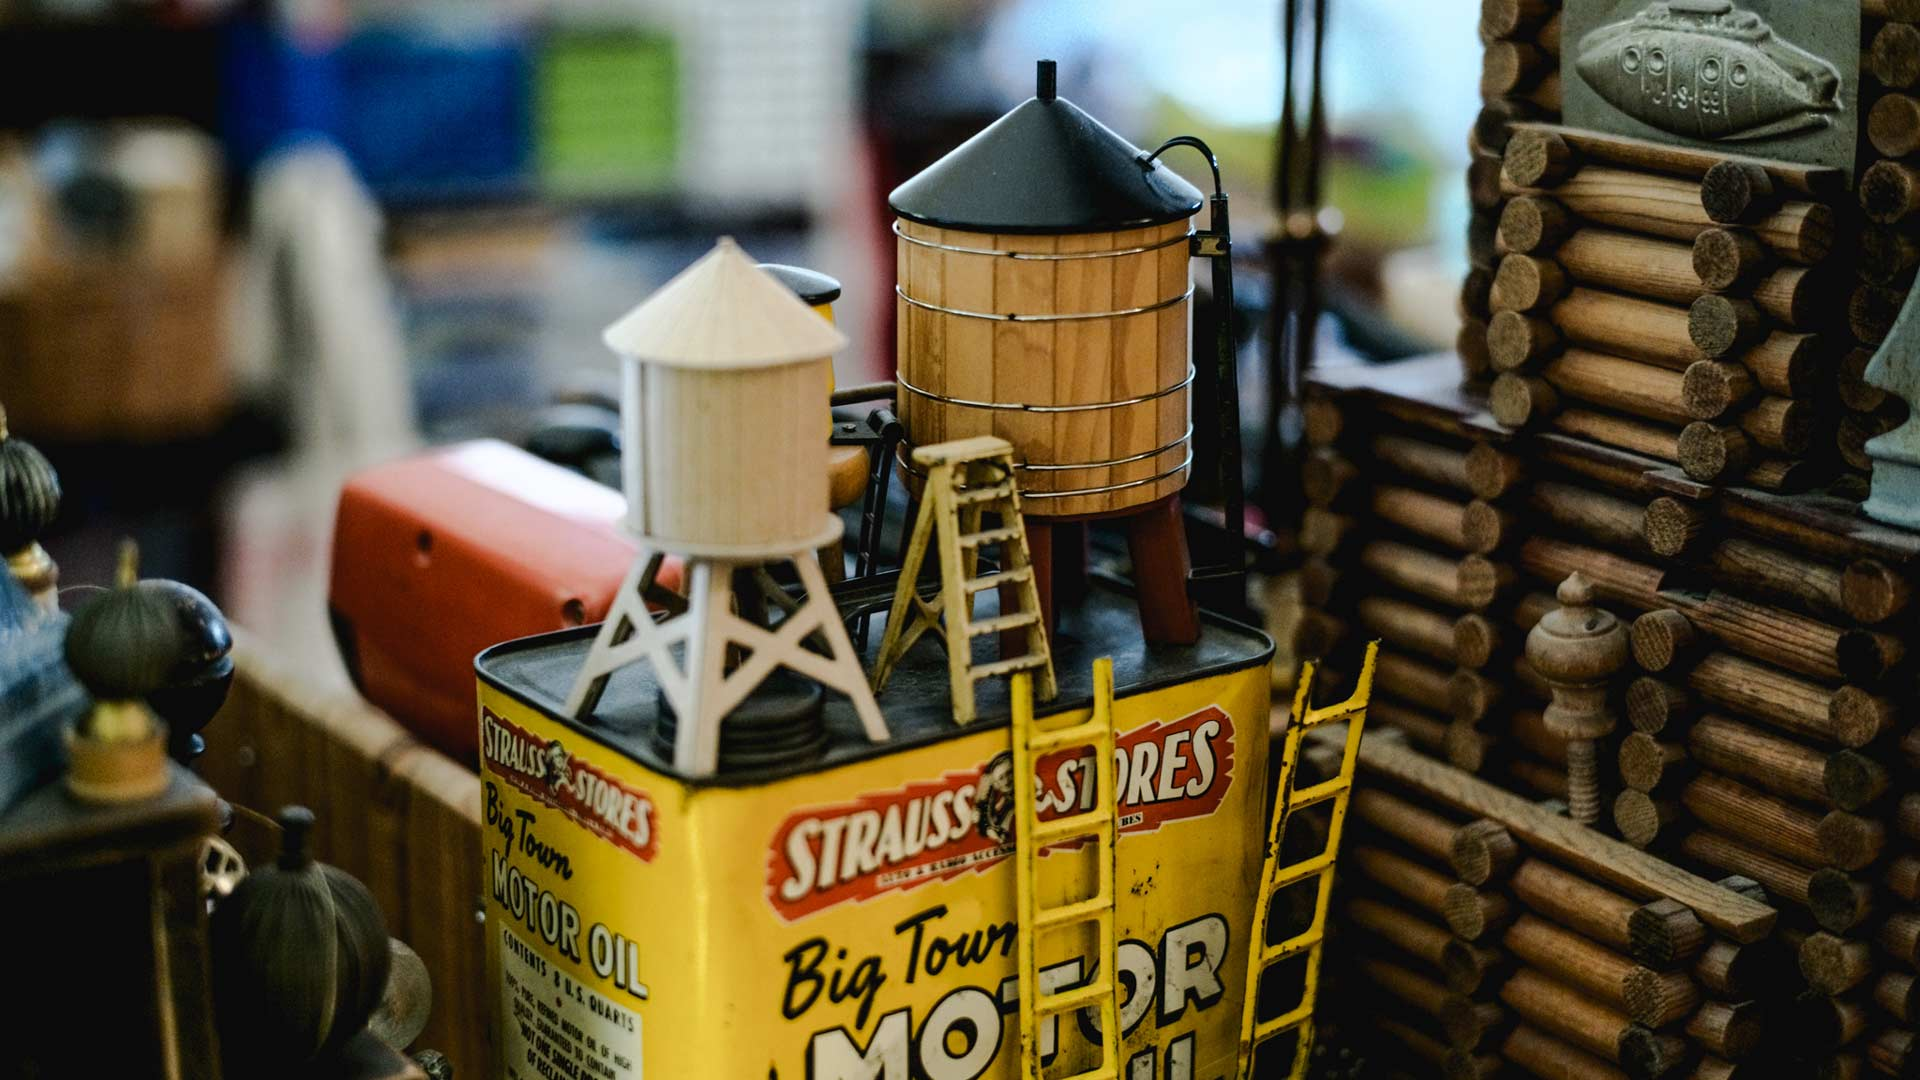 dorothy globus studio miniature water cooling towers on vintage motor oil can